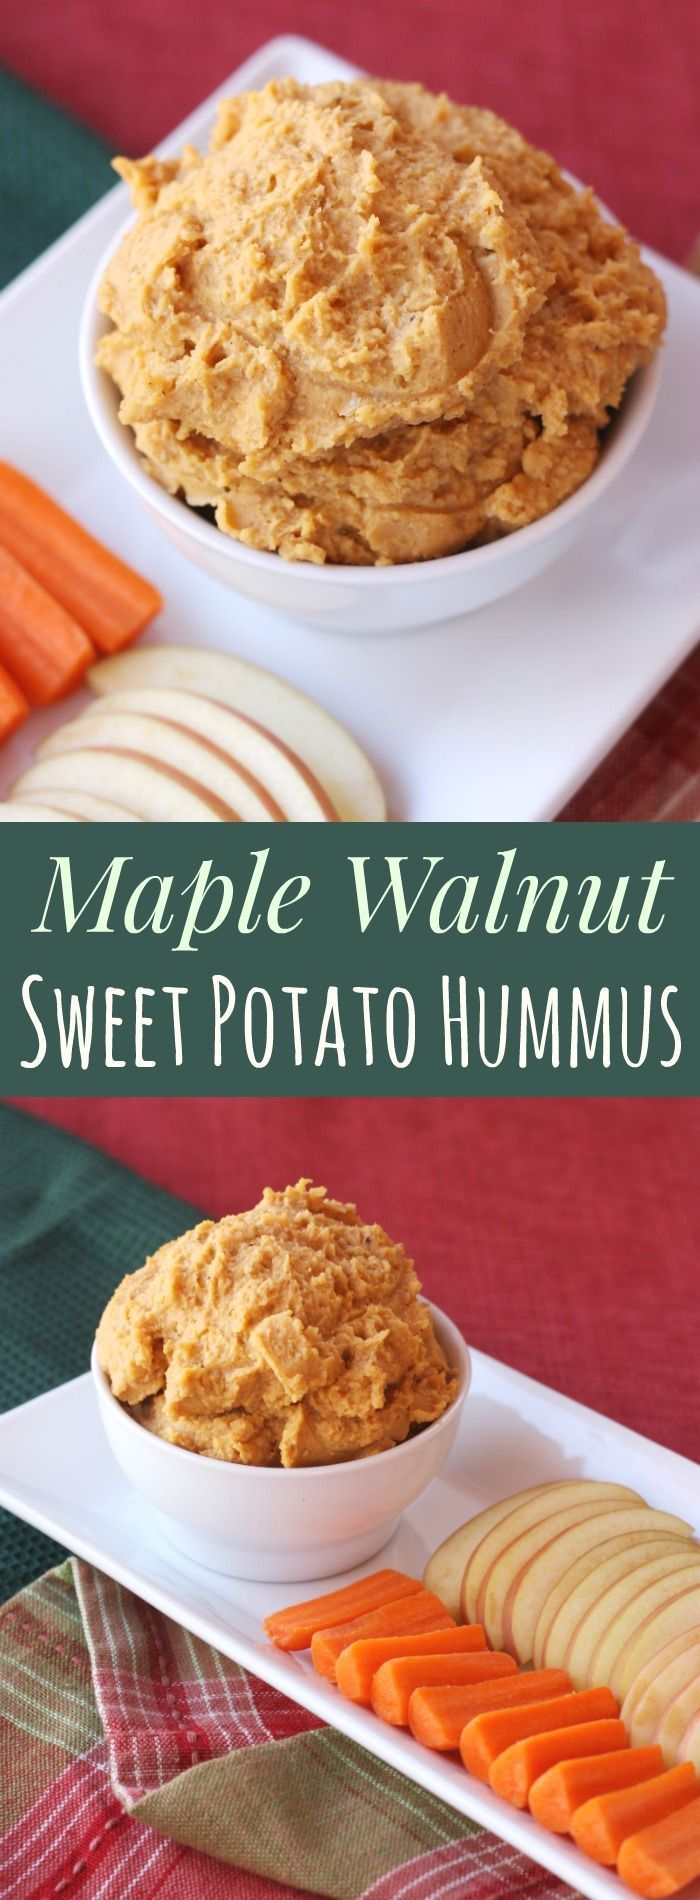 Maple Walnut Sweet Potato Hummus - your favorite dip with a sweet twist. A gluten free, vegan snack or lunch